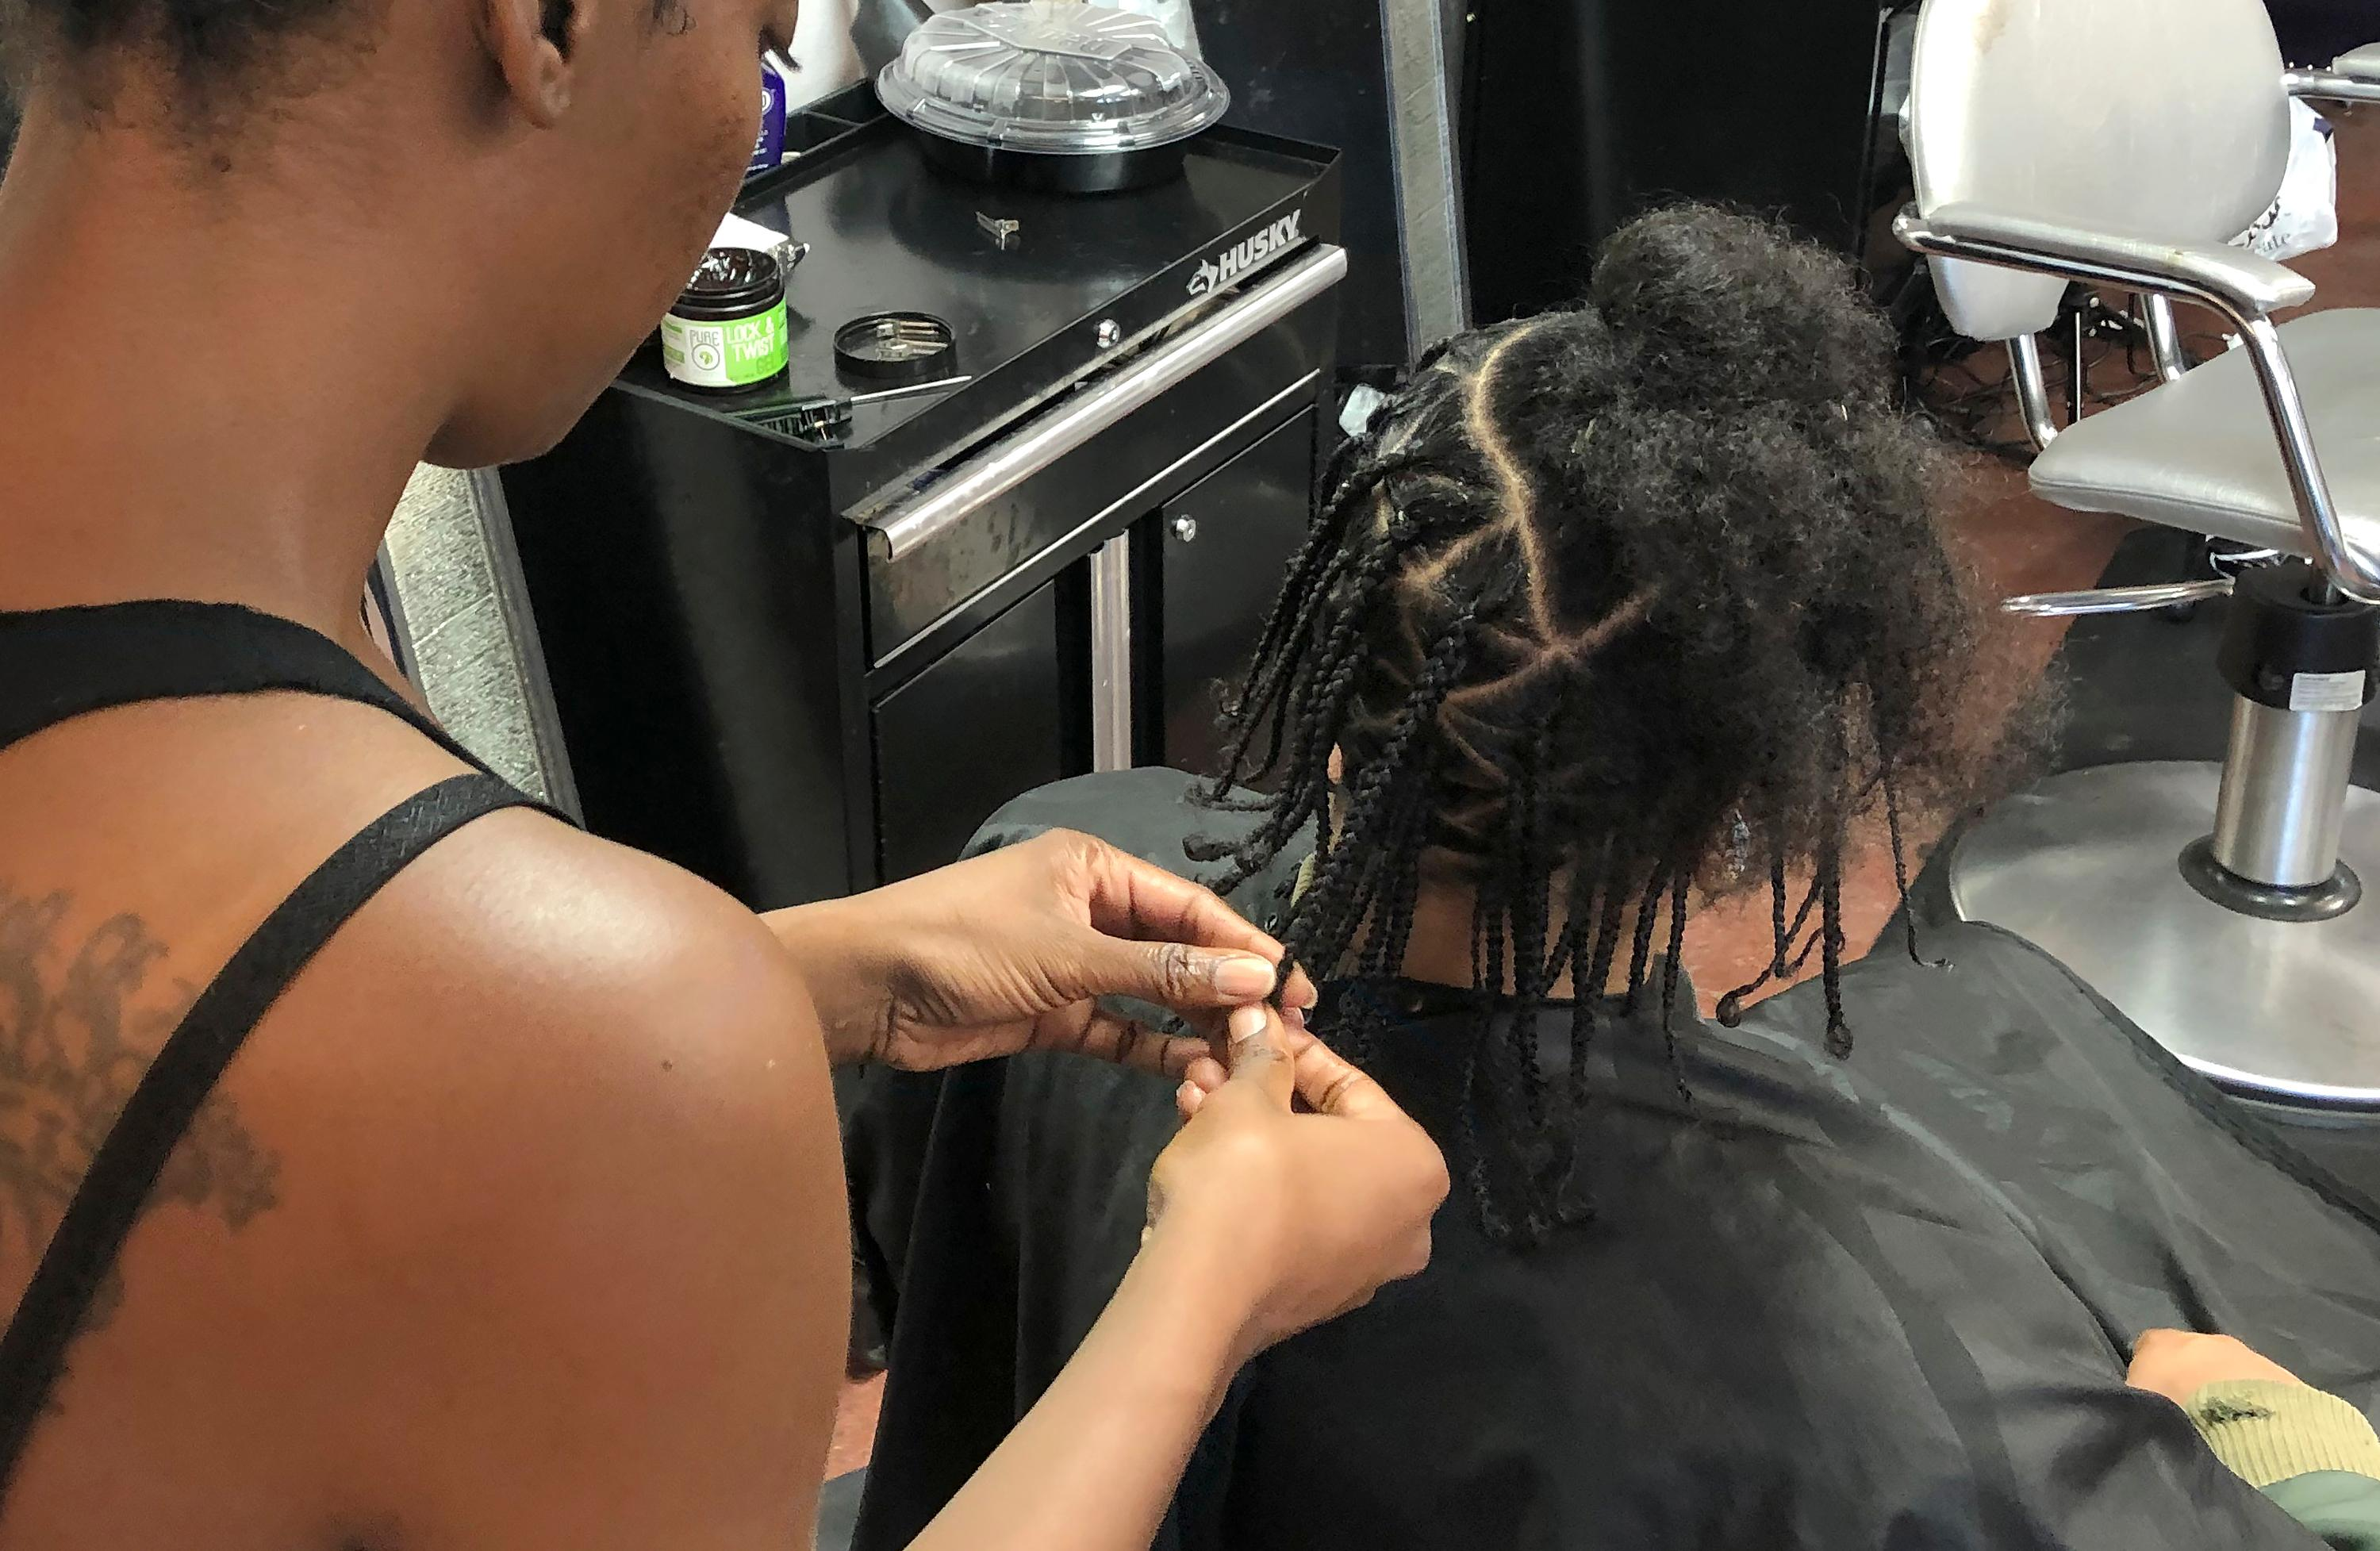 Shana Bonner, left, styles the hair of Pho Gibson at Exquisite U hair salon in Sacramento, Calif., Wednesday, July 3, 2019. Gov. Gavin Newsom signed into law Wednesday a bill making California the first state to ban workplace and school discrimination against black people for wearing hairstyles such as braids, twists and locks. (AP Photo/Kathleen Ronayne)